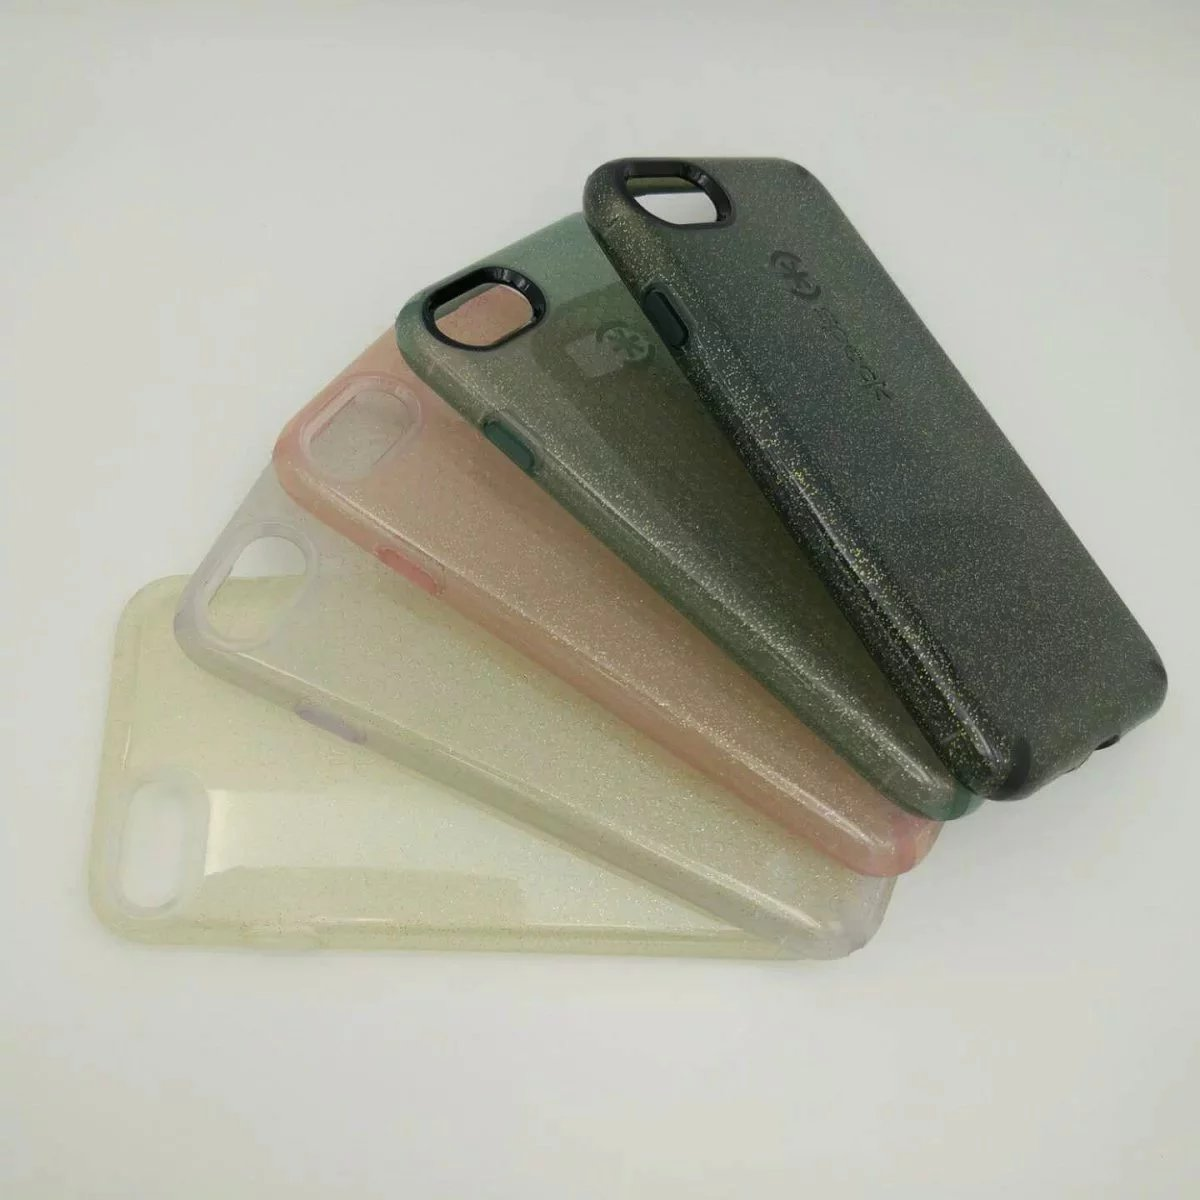 Speck case for iphone 7/7plus